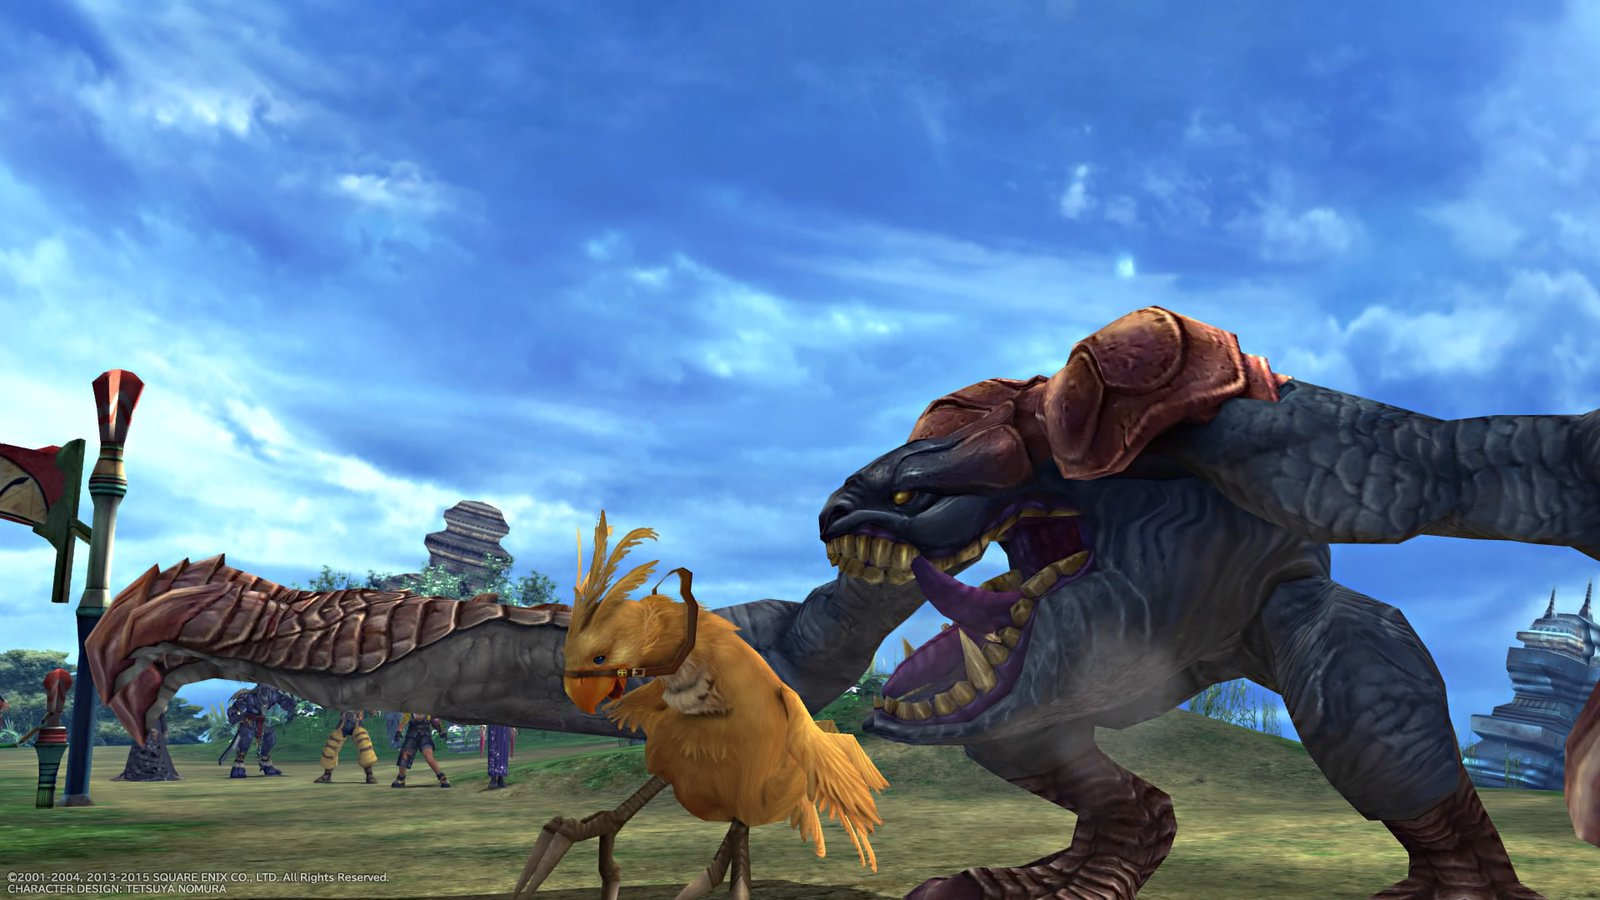 Ffxs Chocobo Eaters Brilliant Game Design Whats In A Game